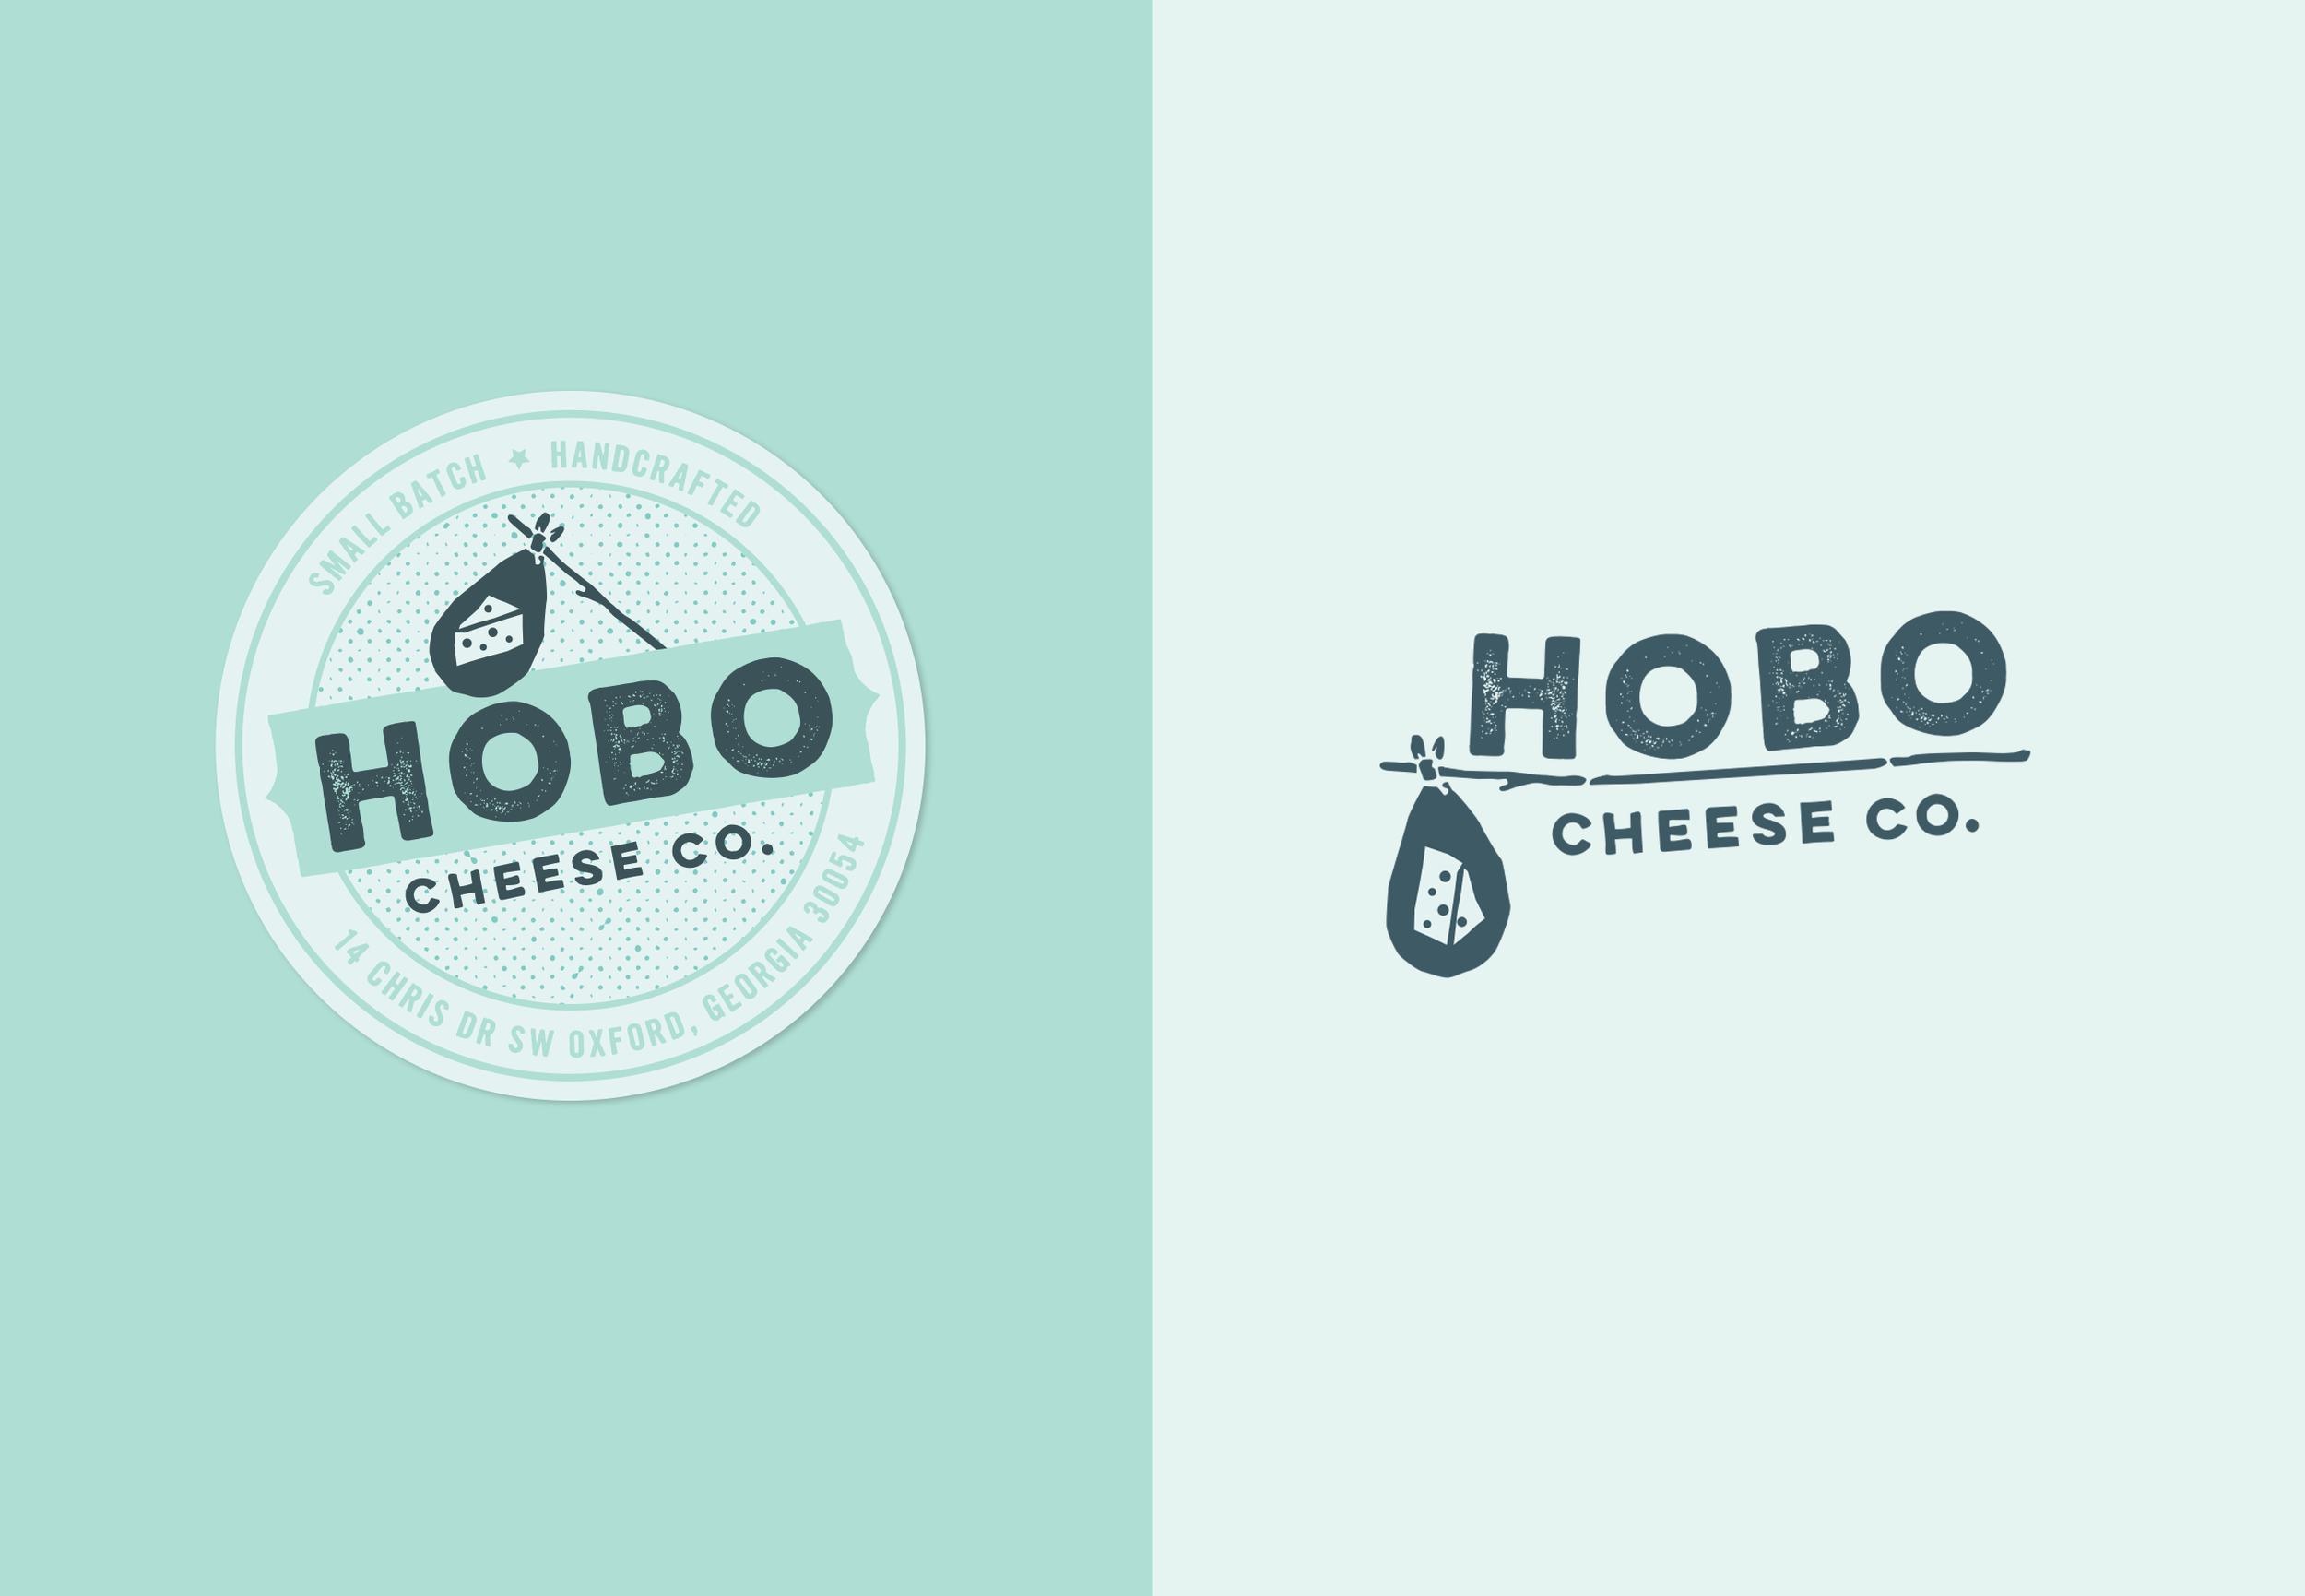 hobo-cheese-co.png